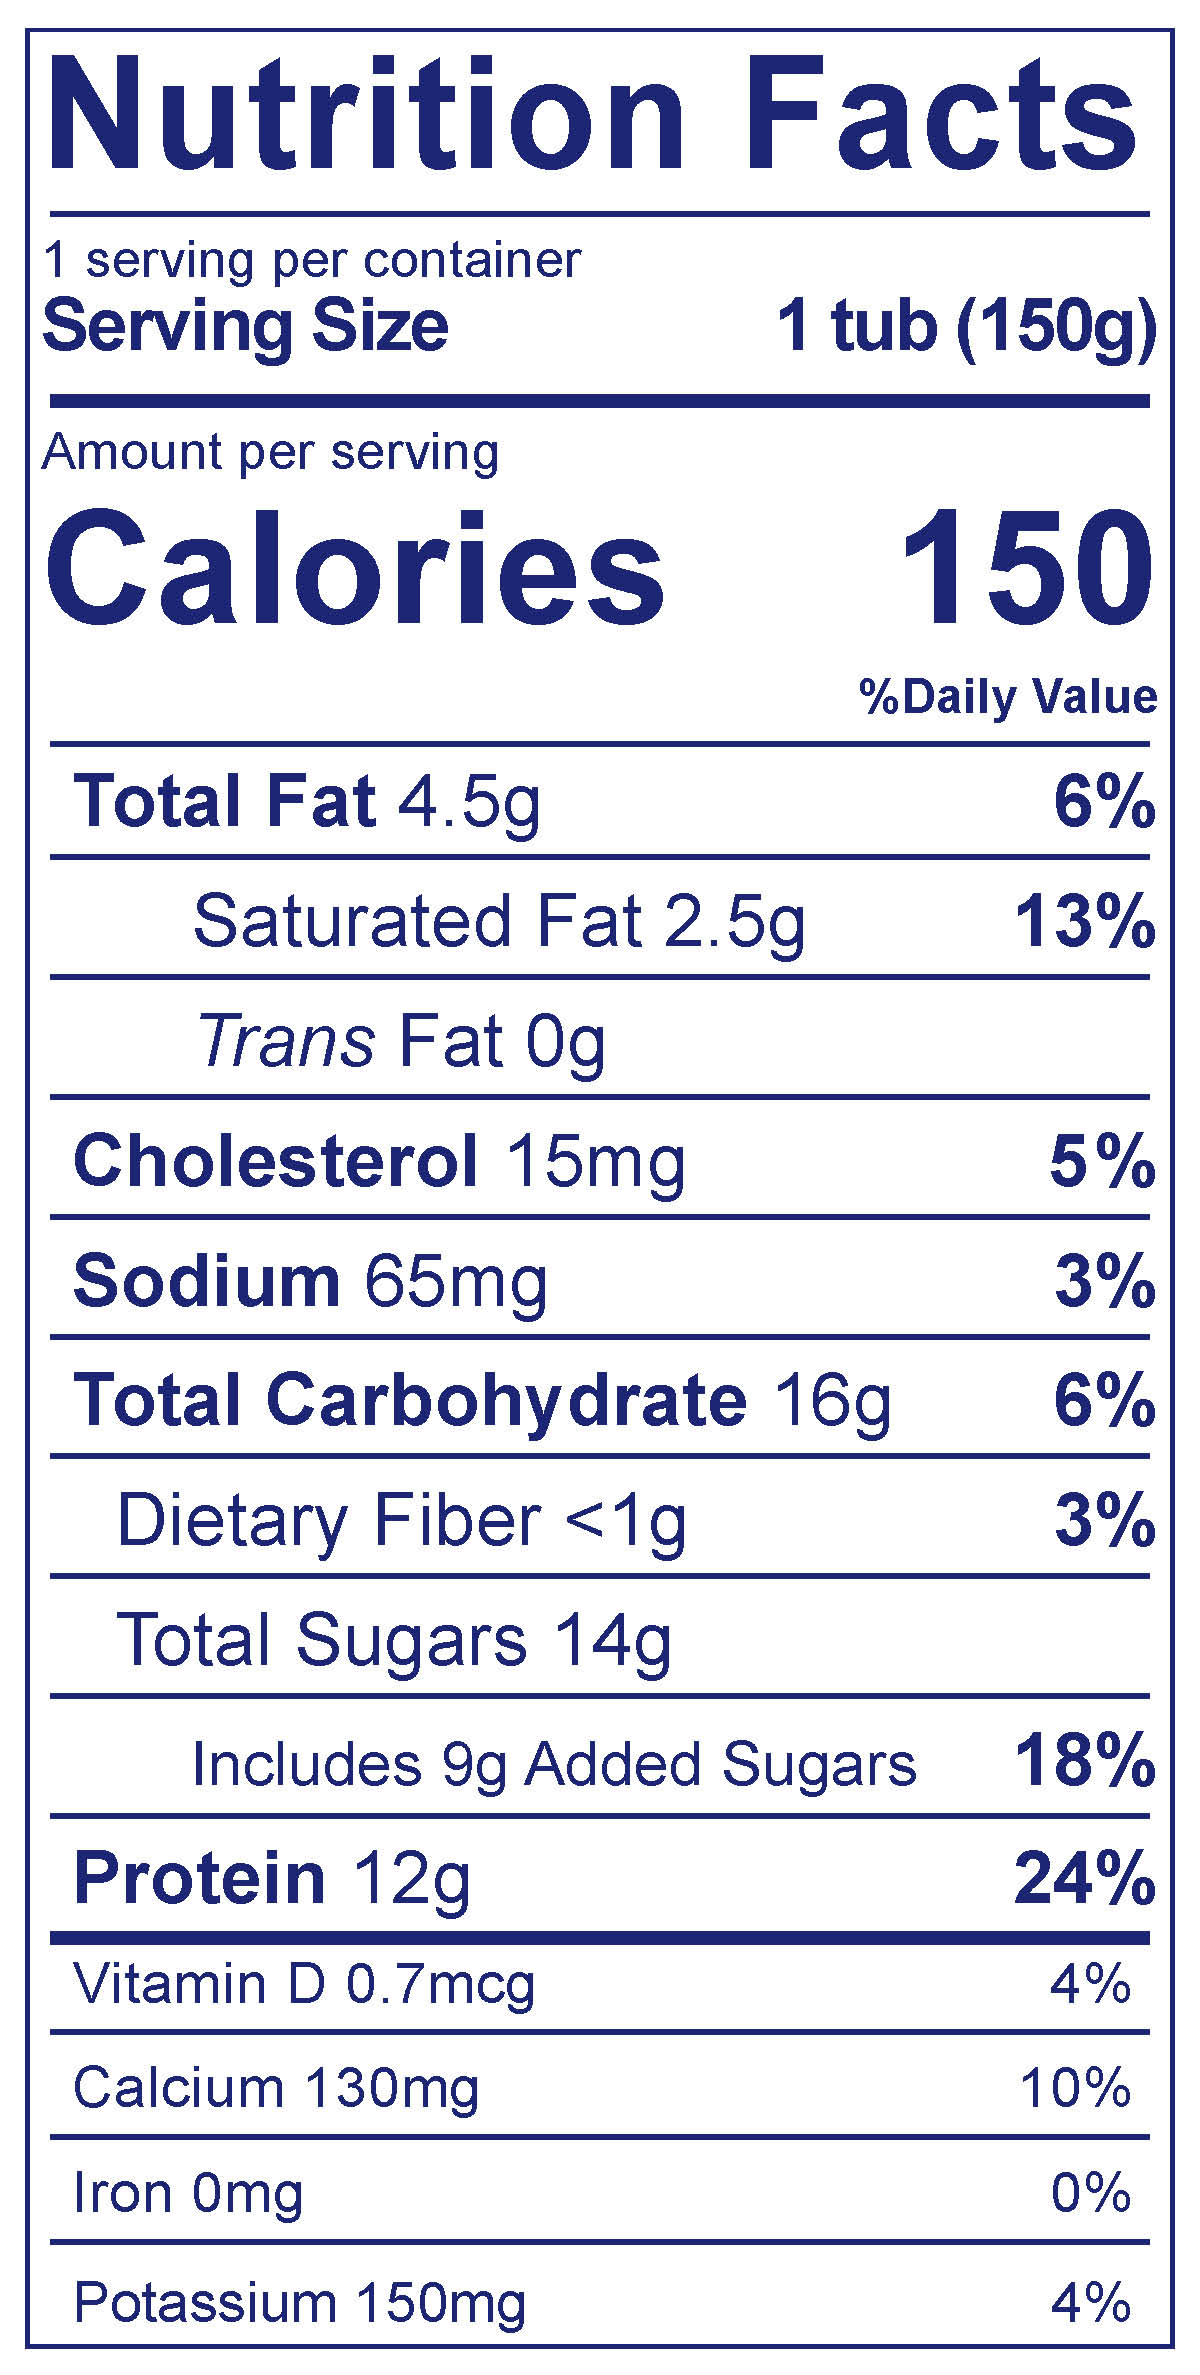 100% Grassfed Greek Blueberry - Nutrition Facts